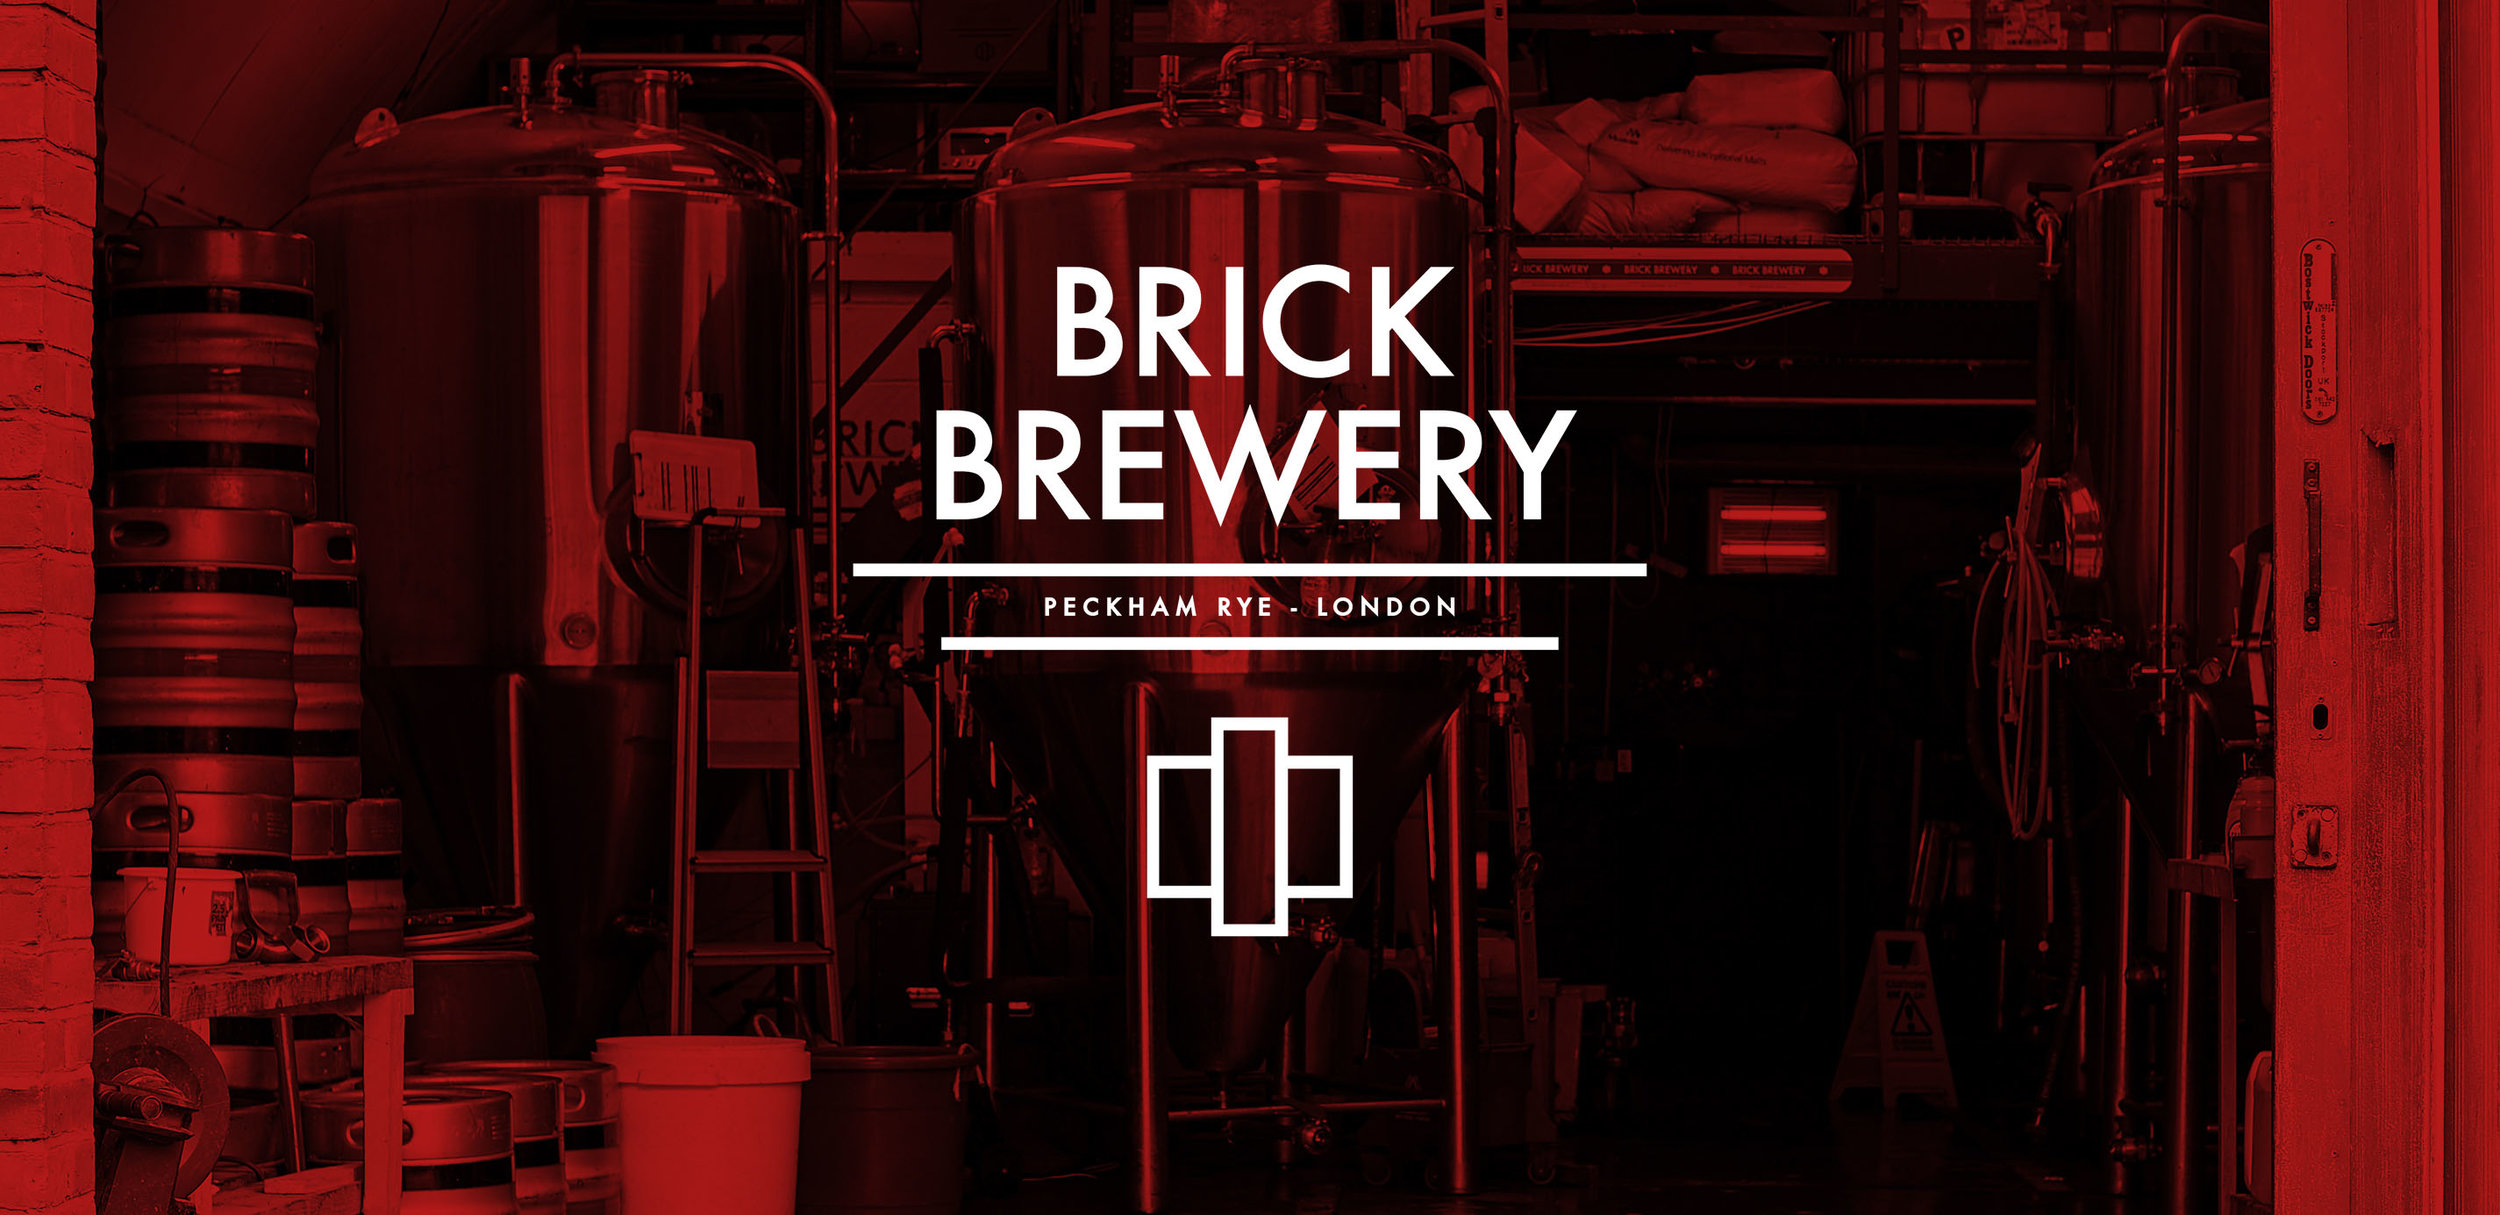 Brick Brewery, Peckham/ Deptford, London, England - It all started in a shed. Yes, not in a railway arch for once (no , this came way later in 2013). Ian started brewing in his garden shed, but Brick Brewery have come along with. With an amazing core range and lots of banging specials, they have outgrown the shed, the railway arch and are now in they new facility in Deptford. Look out for their incredible sours on our specials list!  Peckham Pils, 330ml canPeckham Pale, 330ml canPeckham Rye, 330ml can